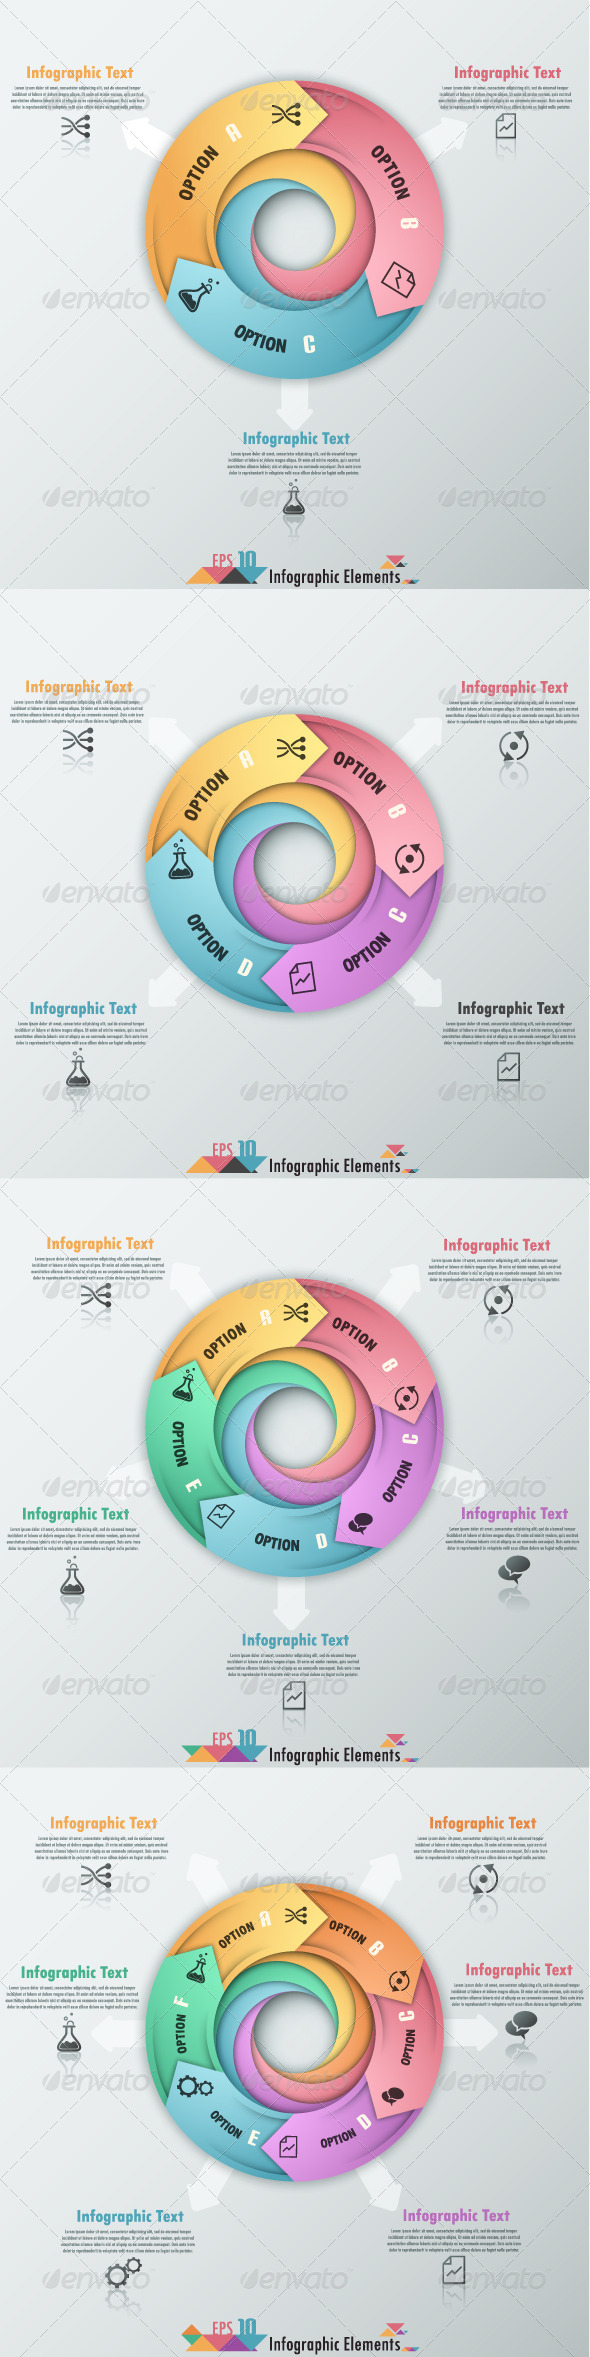 Modern Infographic Options Banner 4 Versions